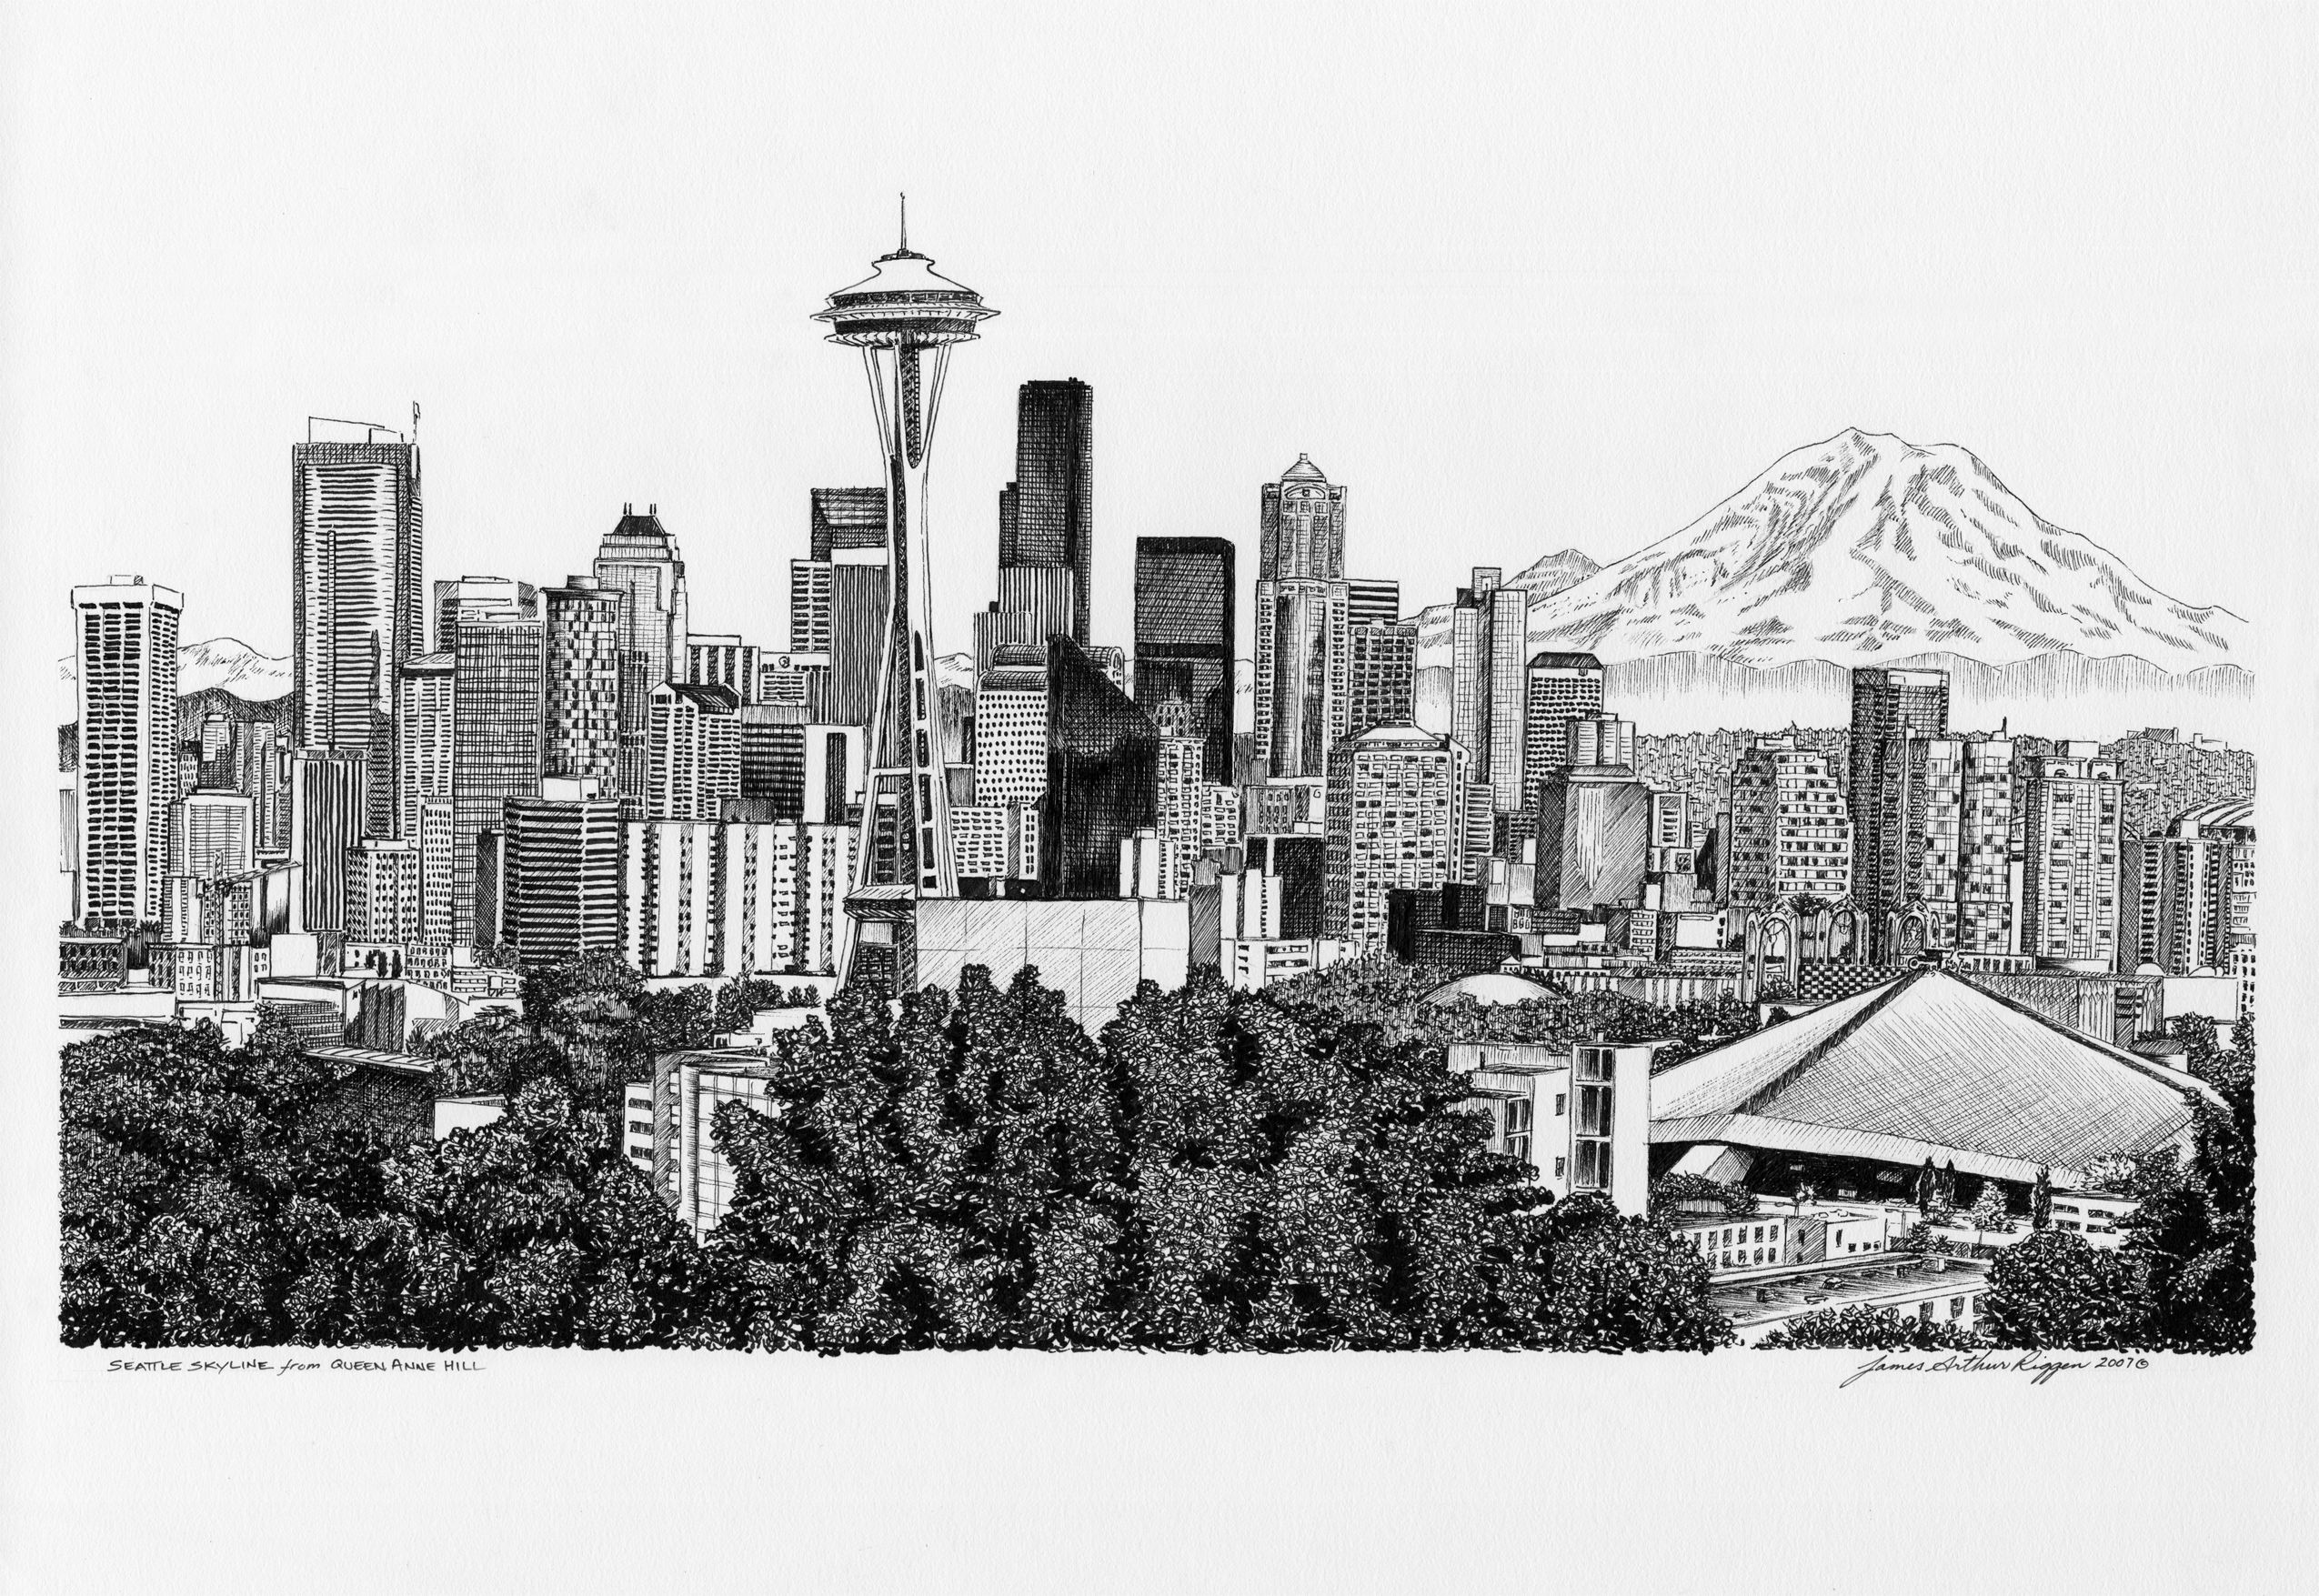 clipart royalty free library Seattle drawing. Arty in skyline tattoo.